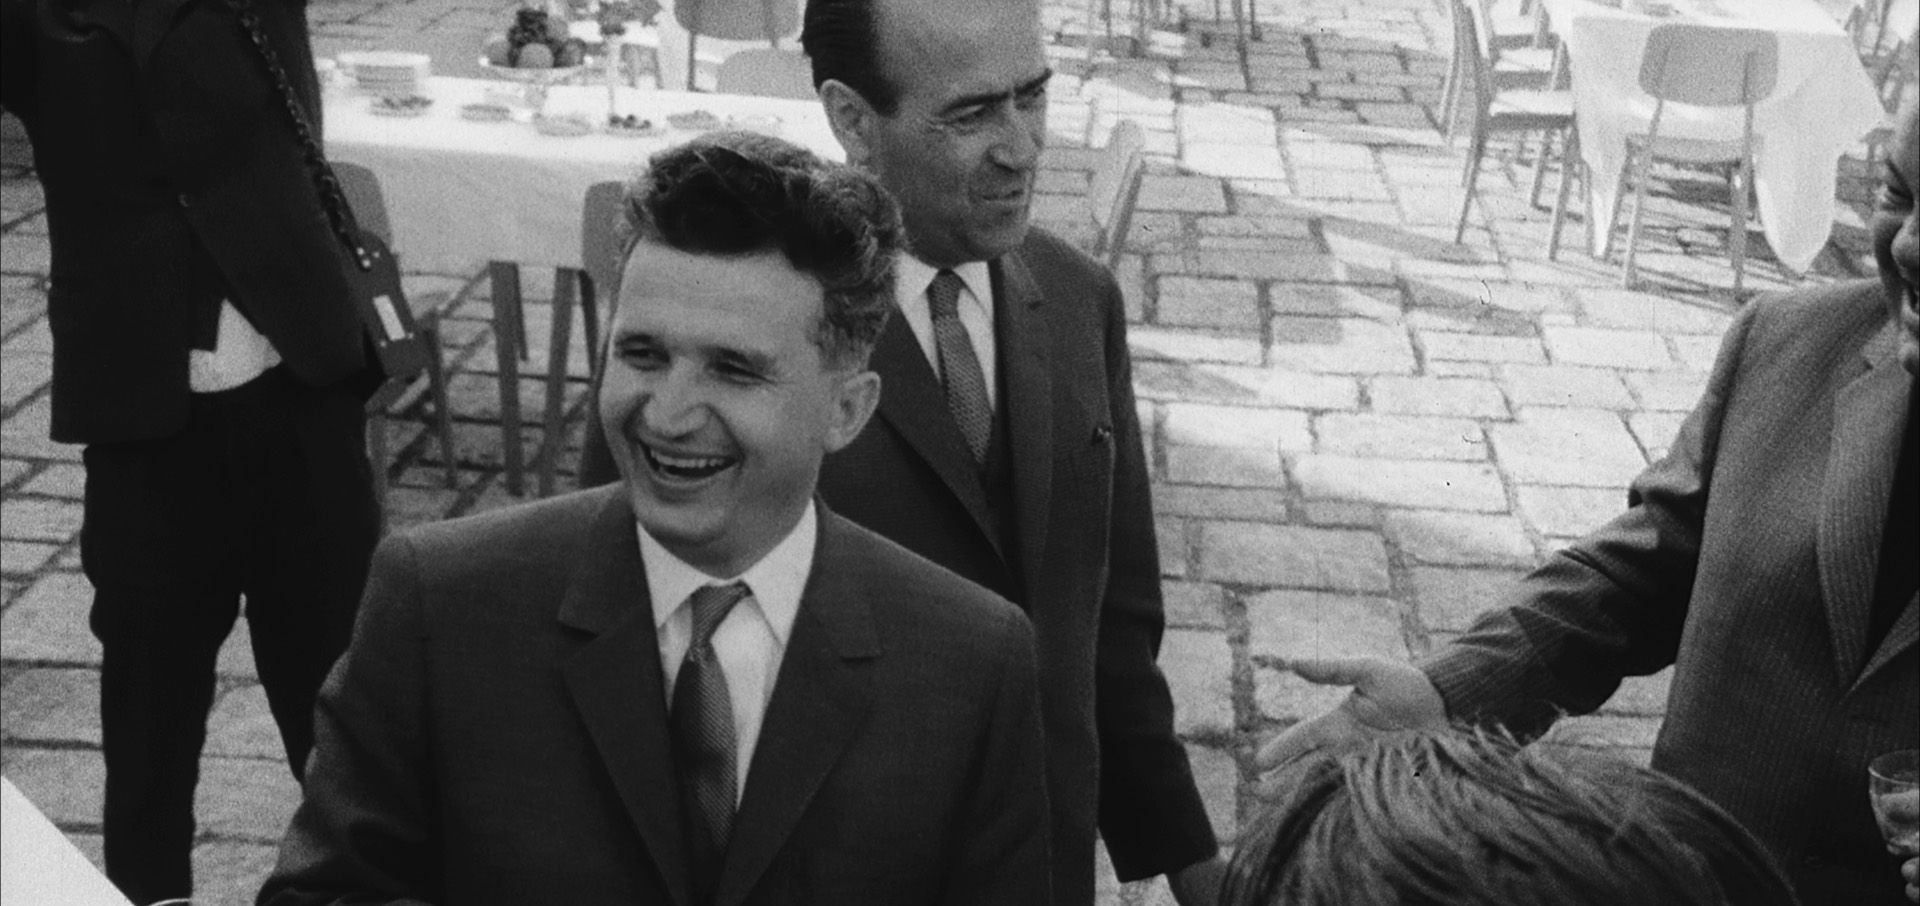 An image from The Autobiography of Nicolae Ceausescu